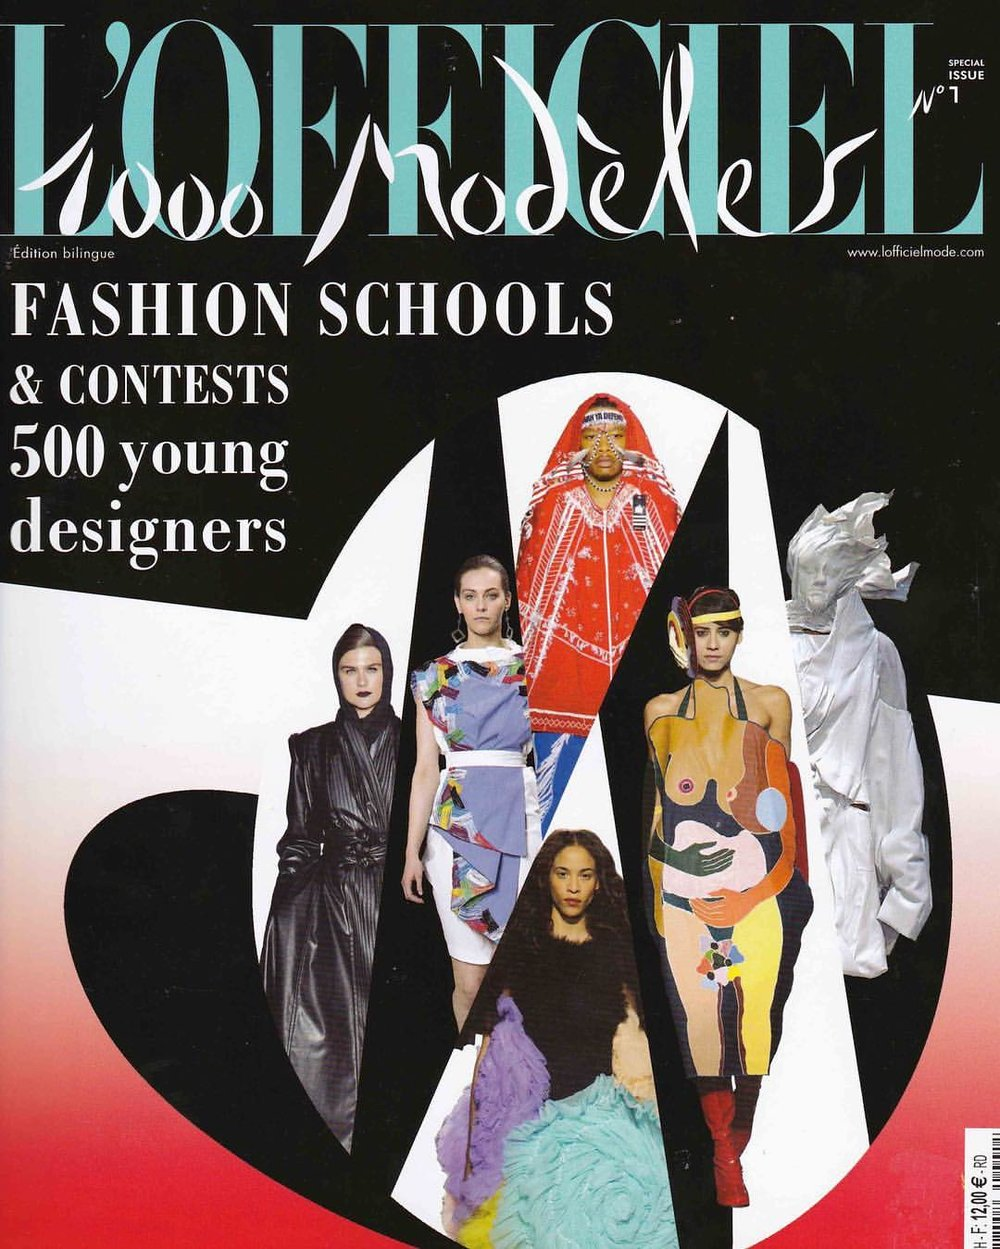 Grey Look is on the cover for L'OFFICIEL Magazine '1000 Modeles' edition